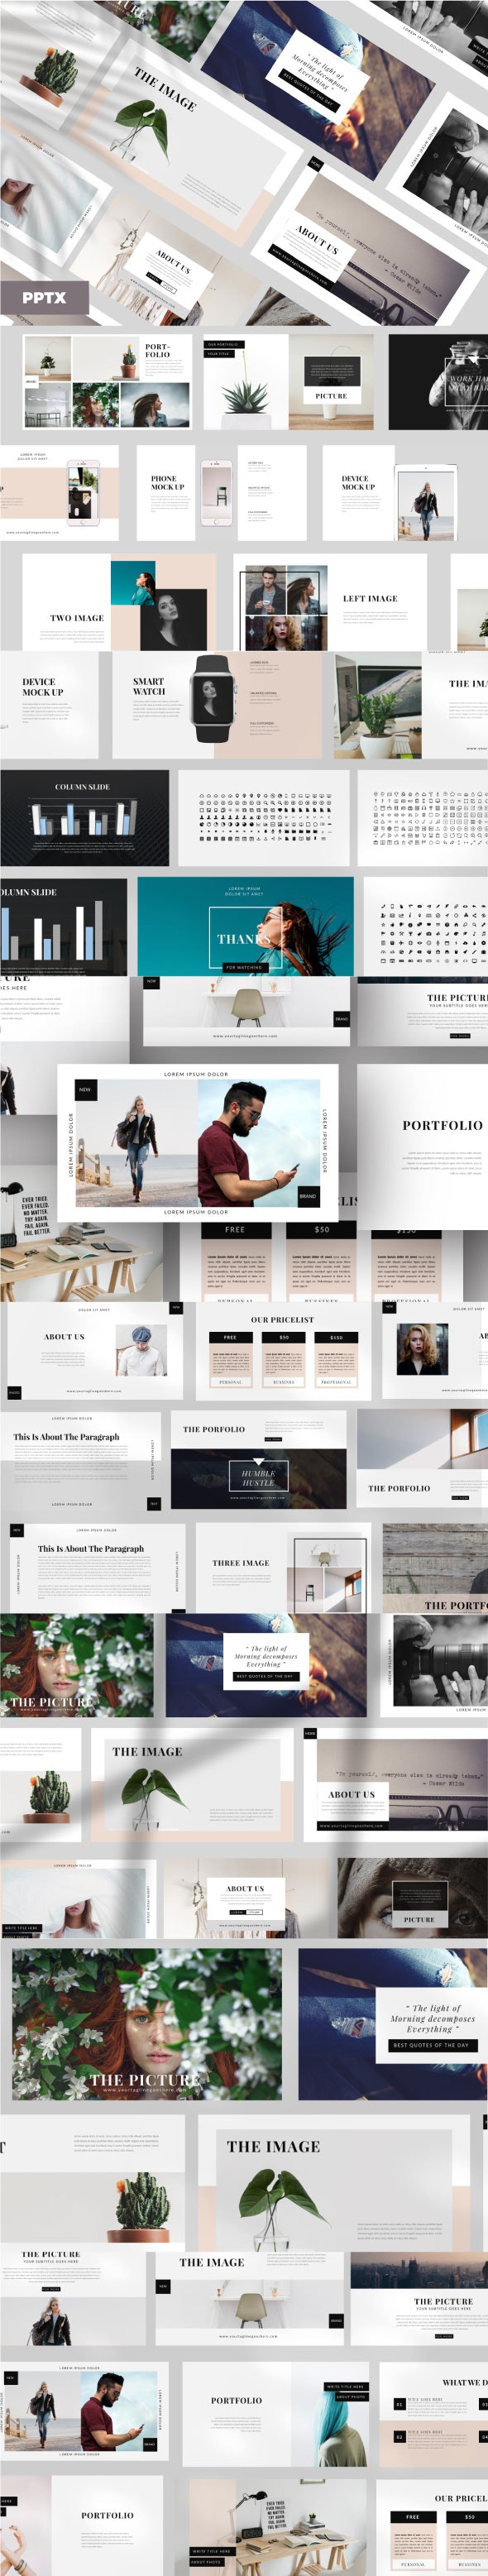 Elegant Business Powerpoint Template - Business PowerPoint Templates